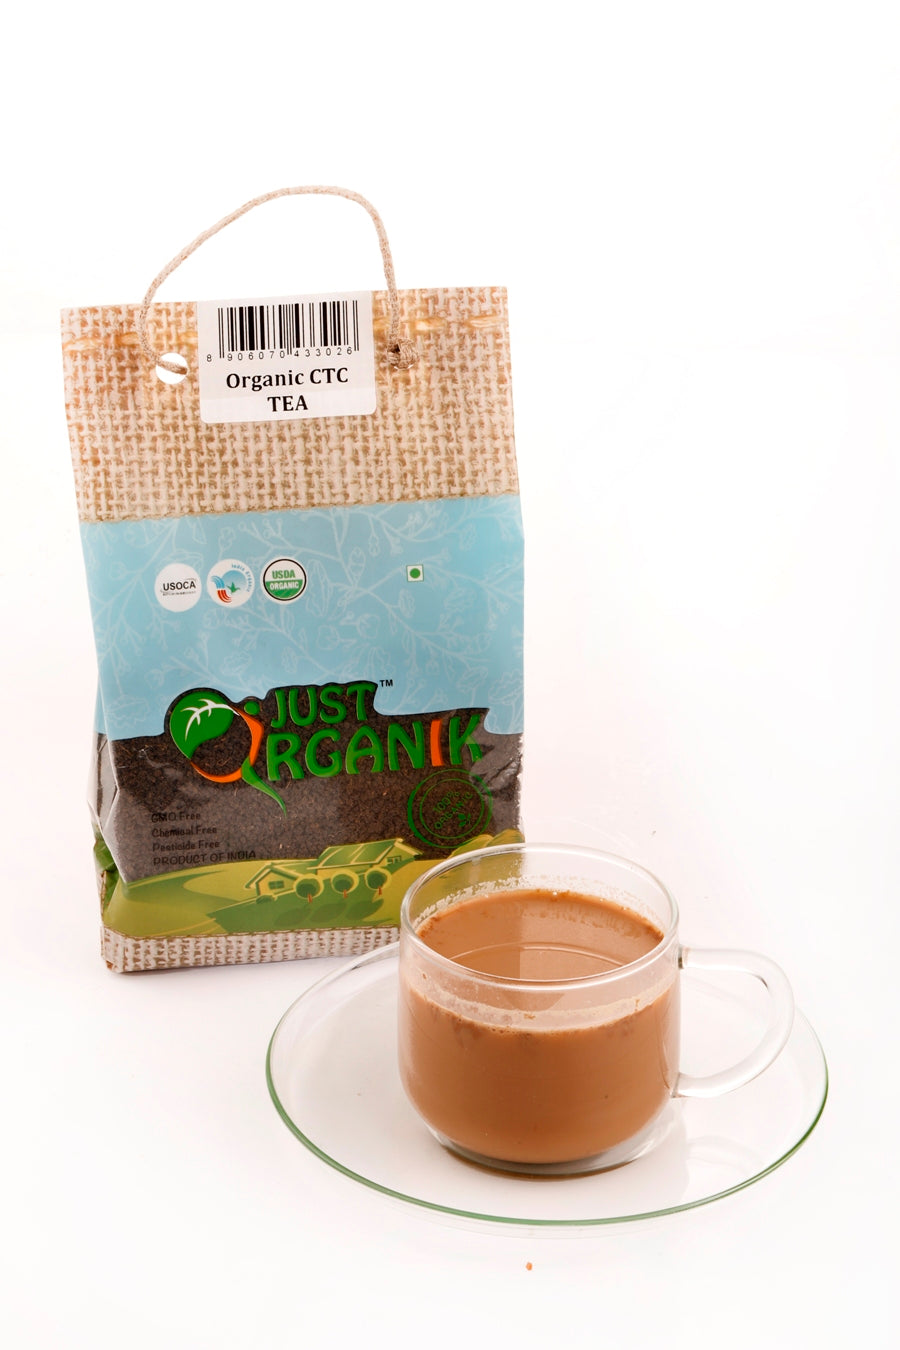 Organic CTC Tea from JustOrganik